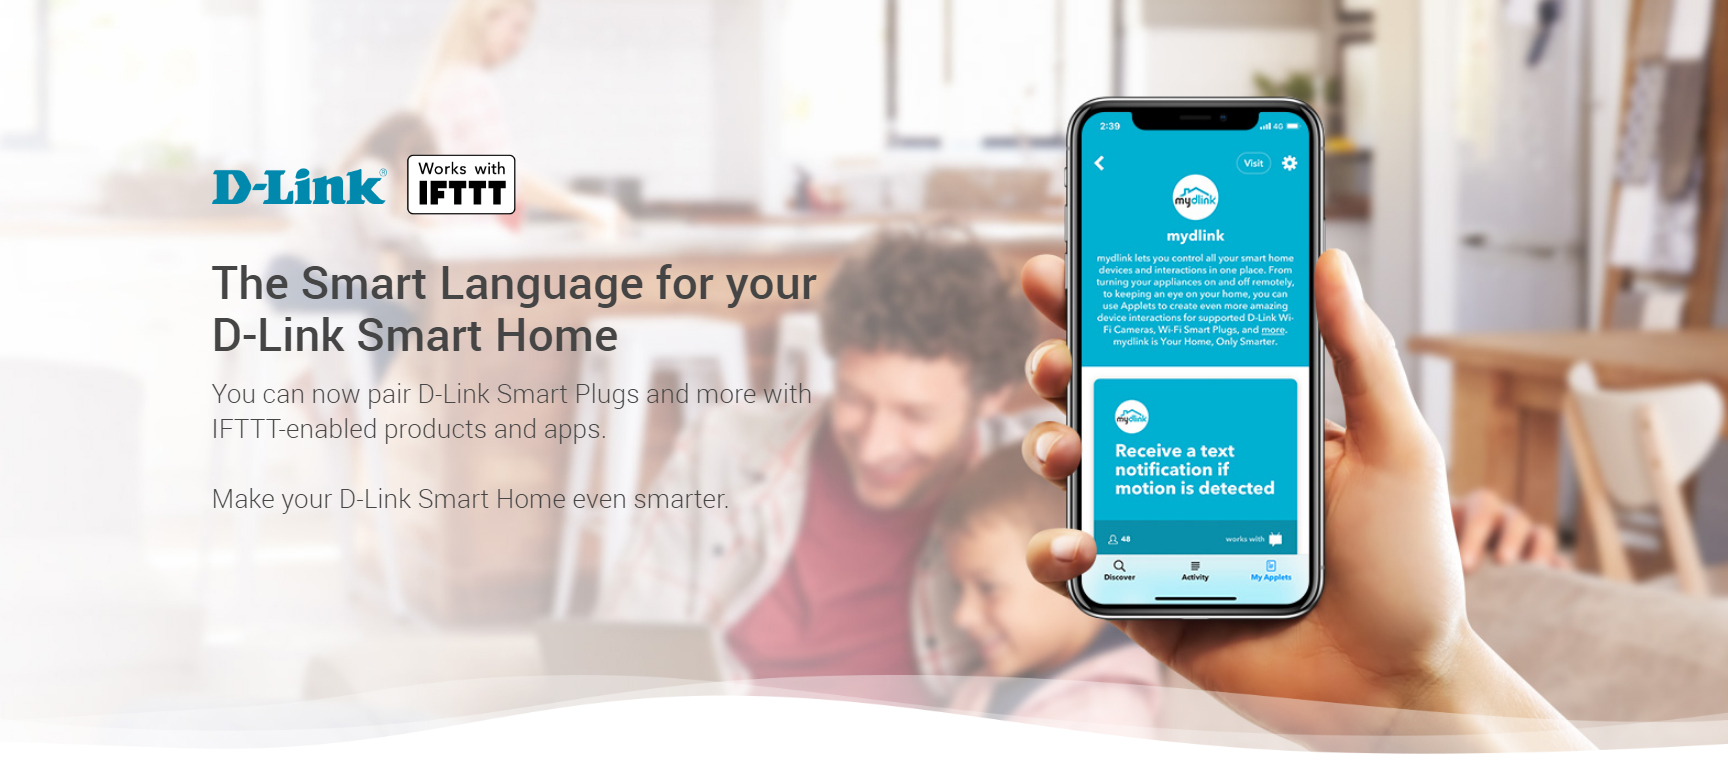 The Smart Language for your D-Link Smart Home